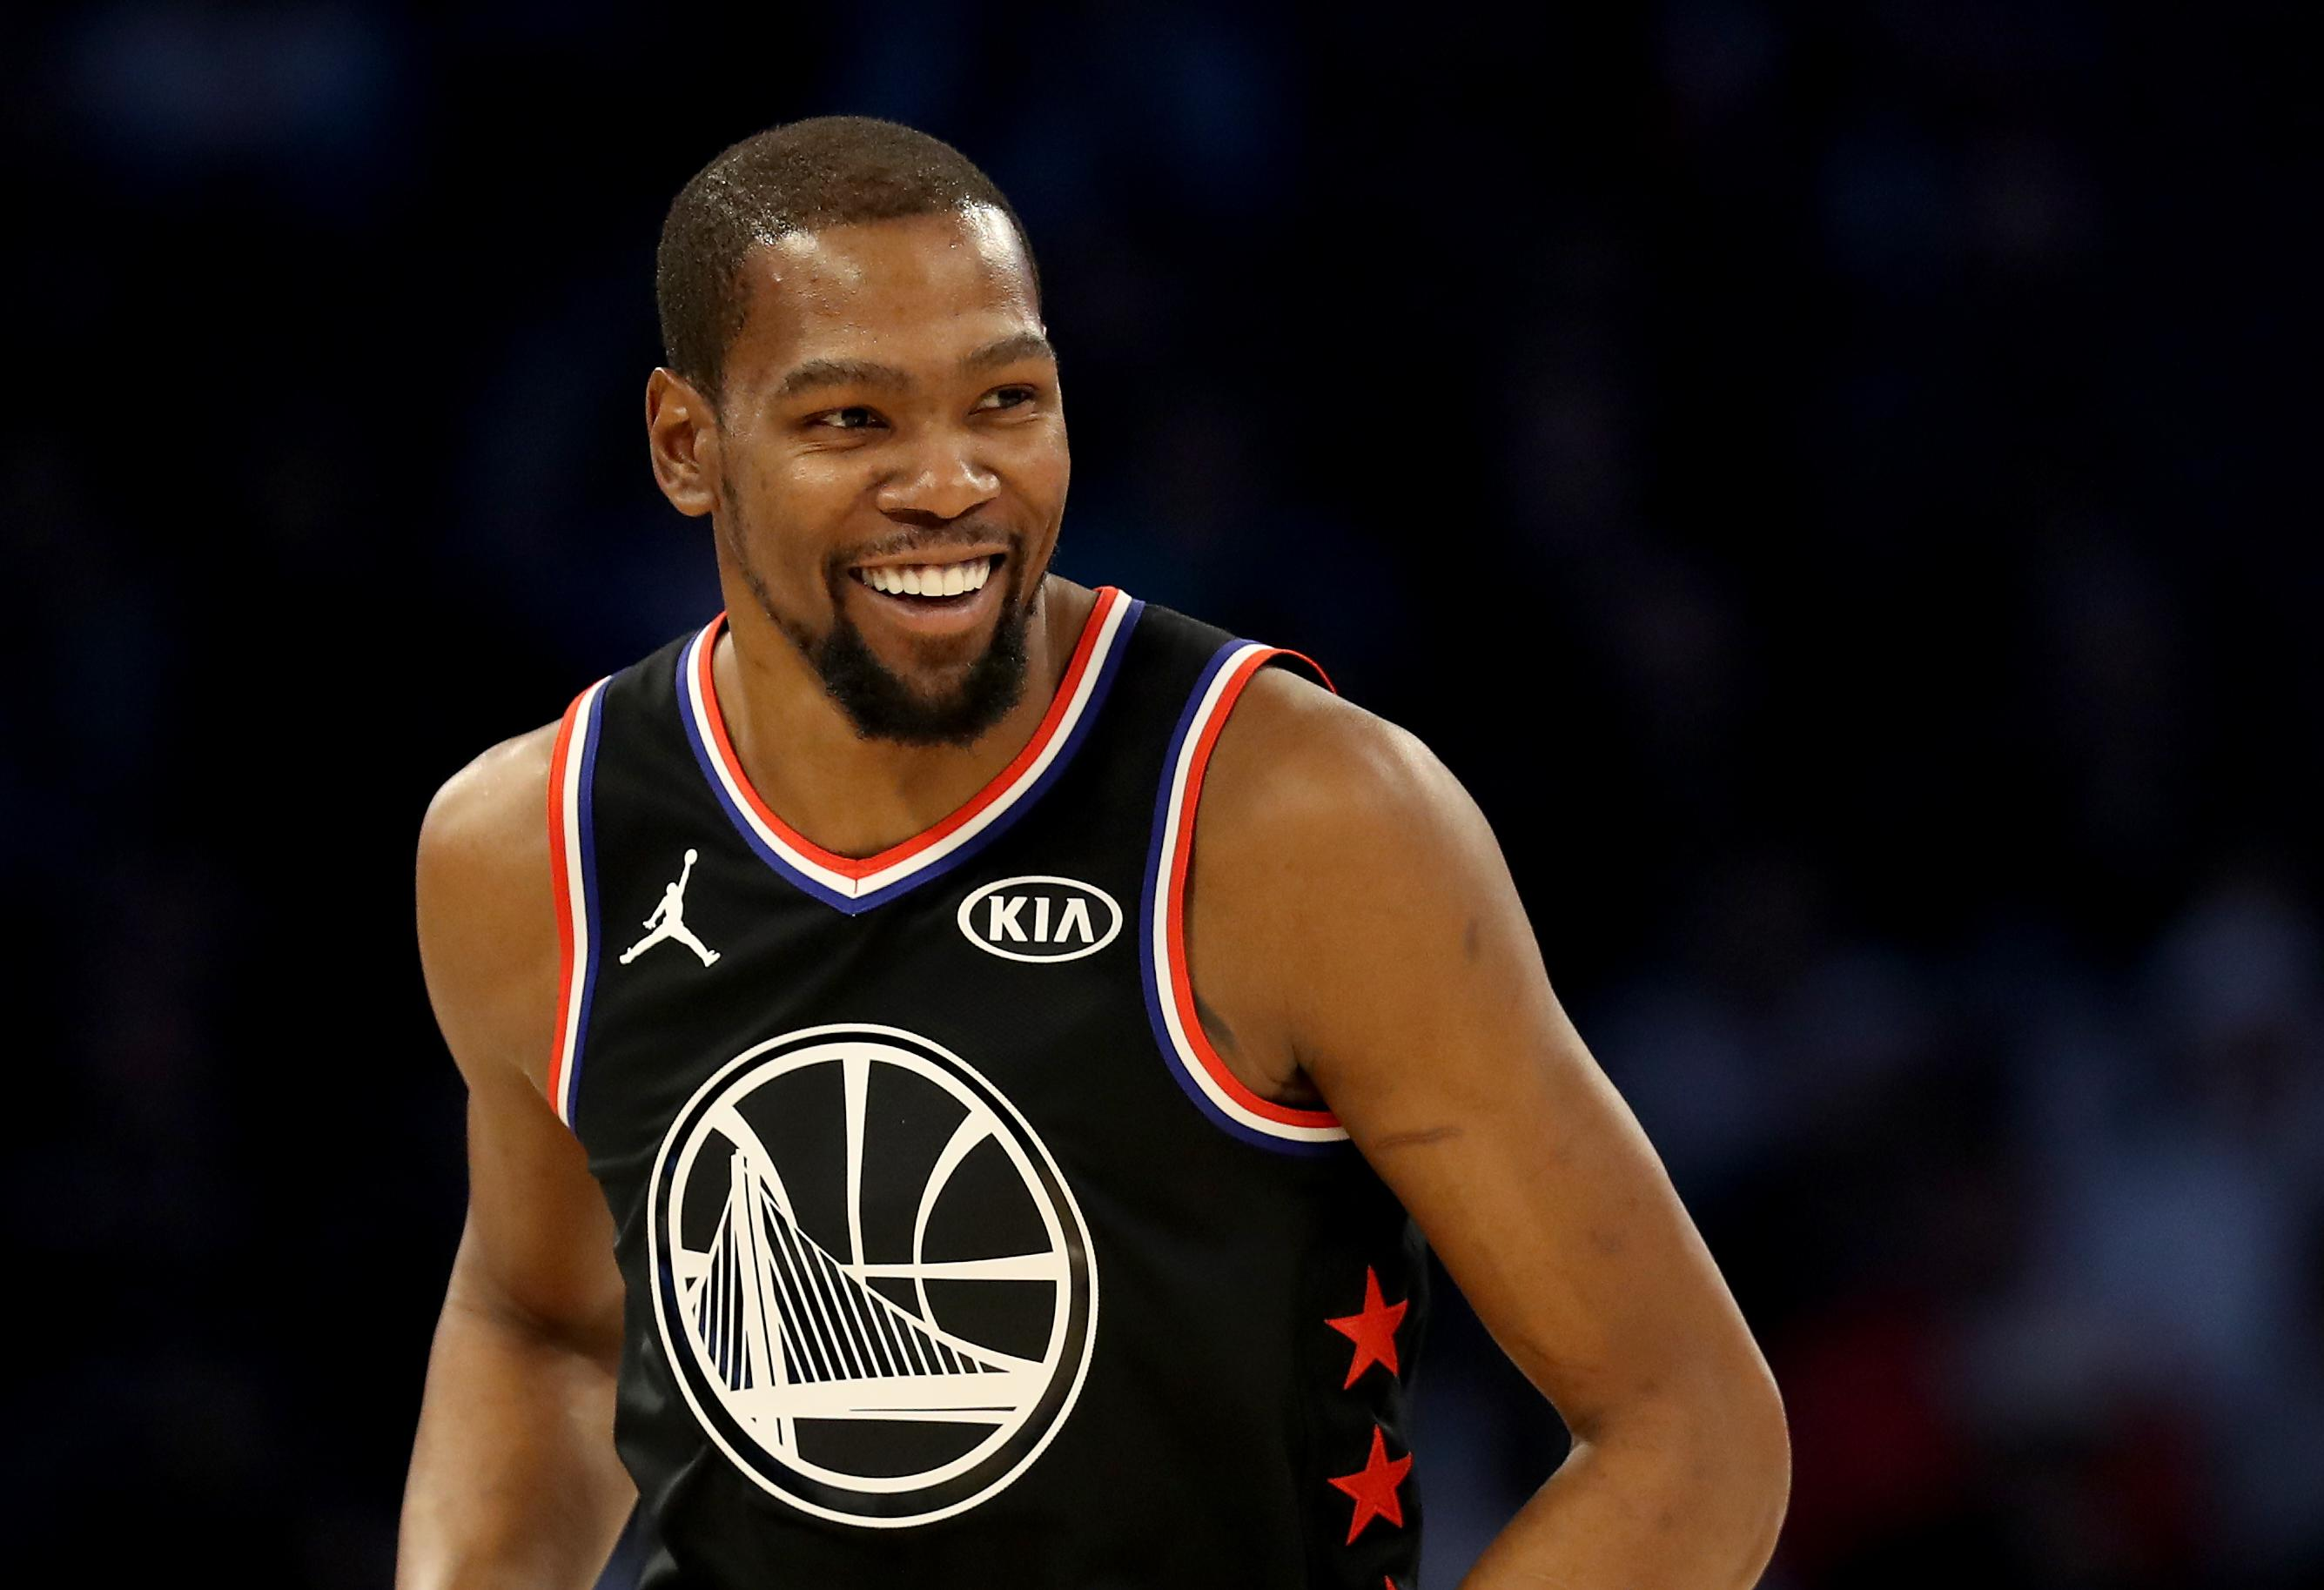 bfb91fa307c0 Team LeBron wins NBA All-Star Game over Team Giannis  Kevin Durant named MVP